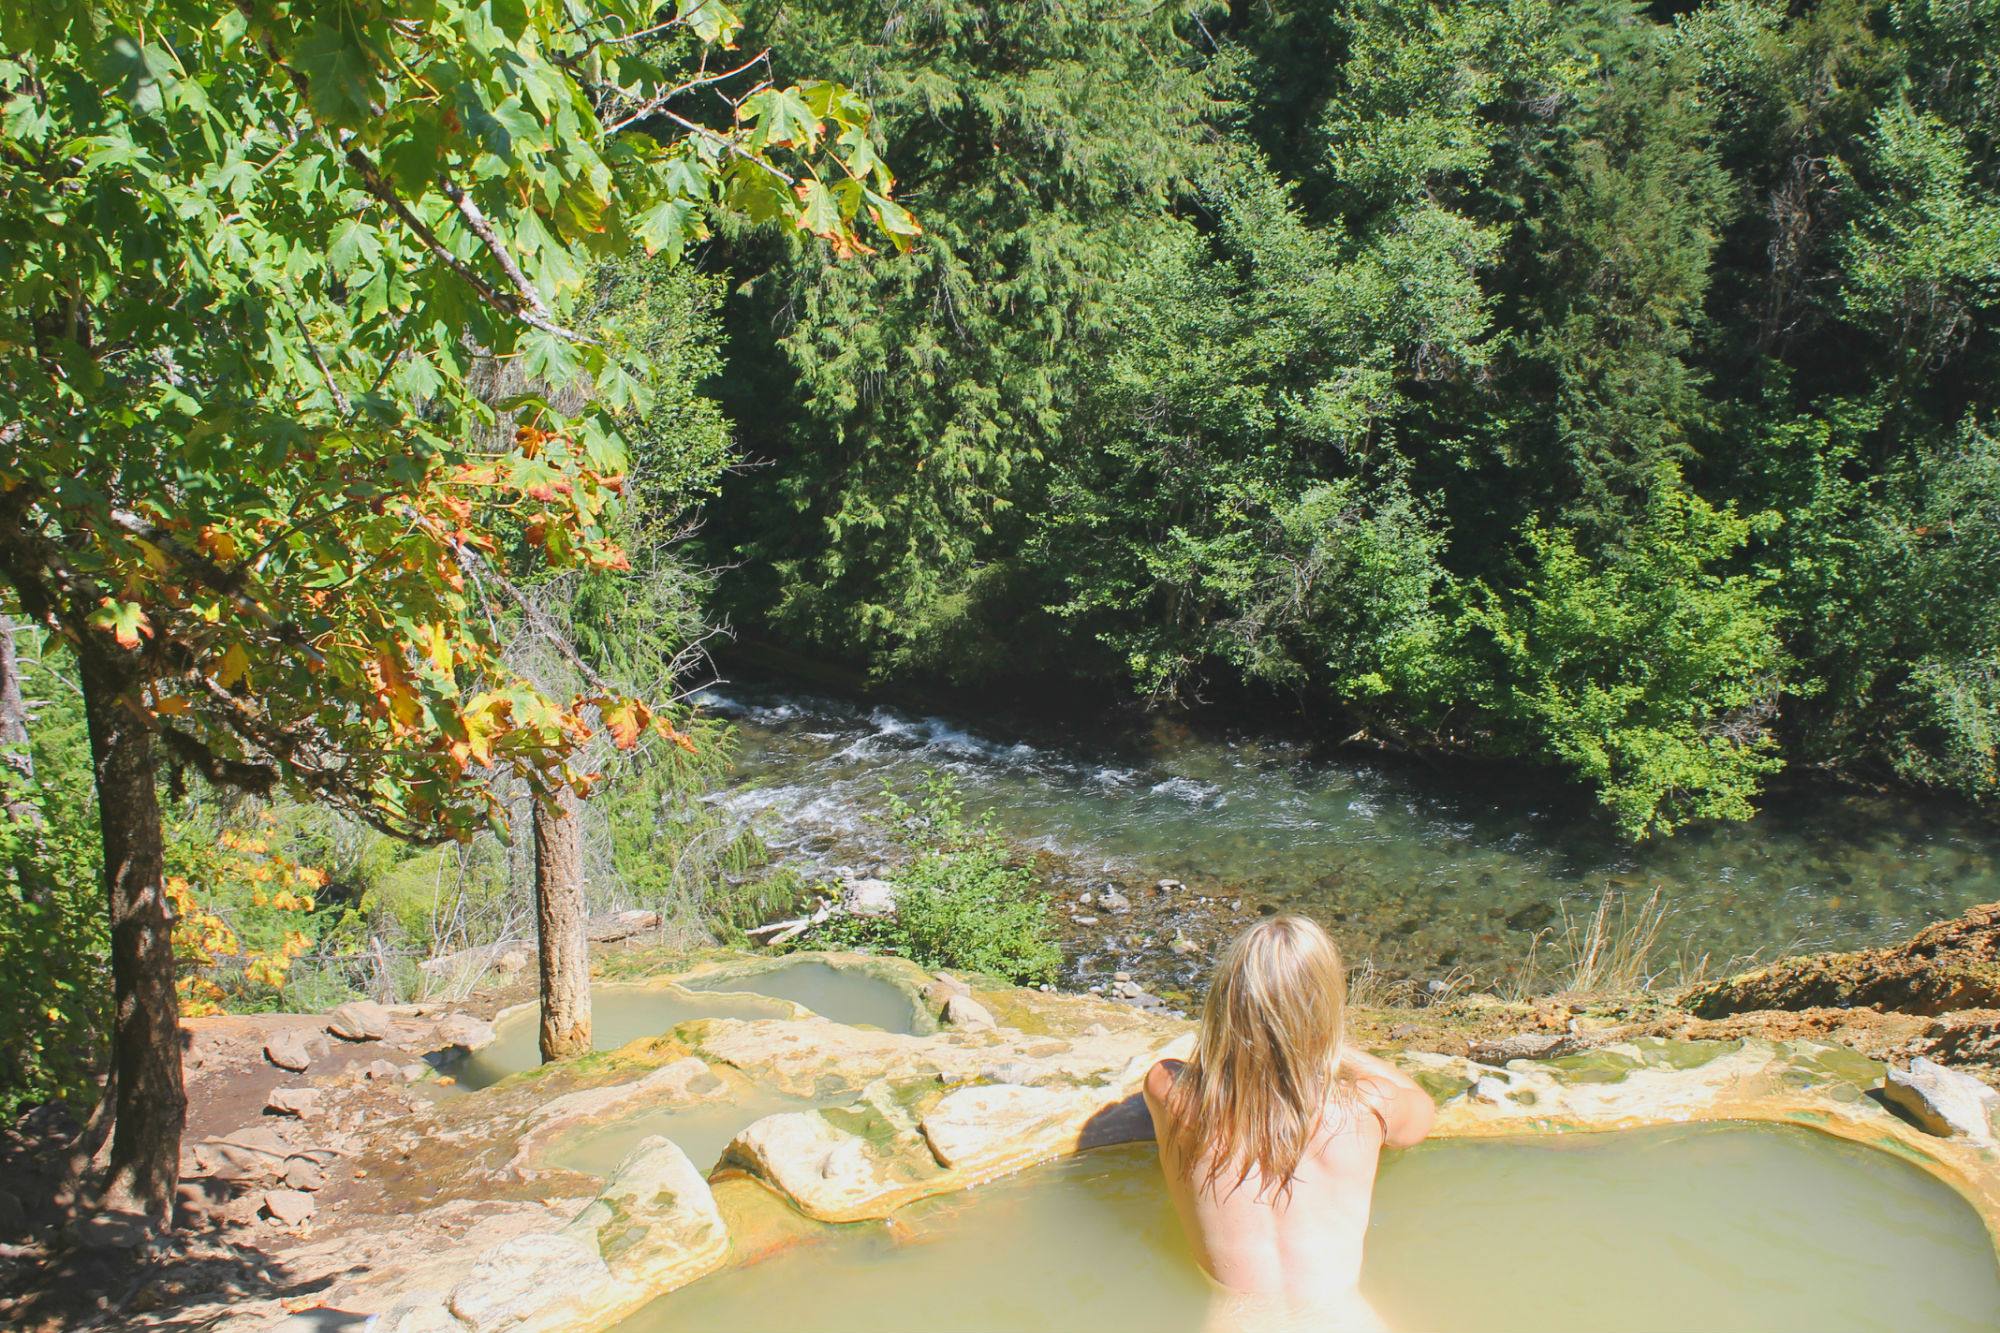 Pictures of people naked in hotsprings